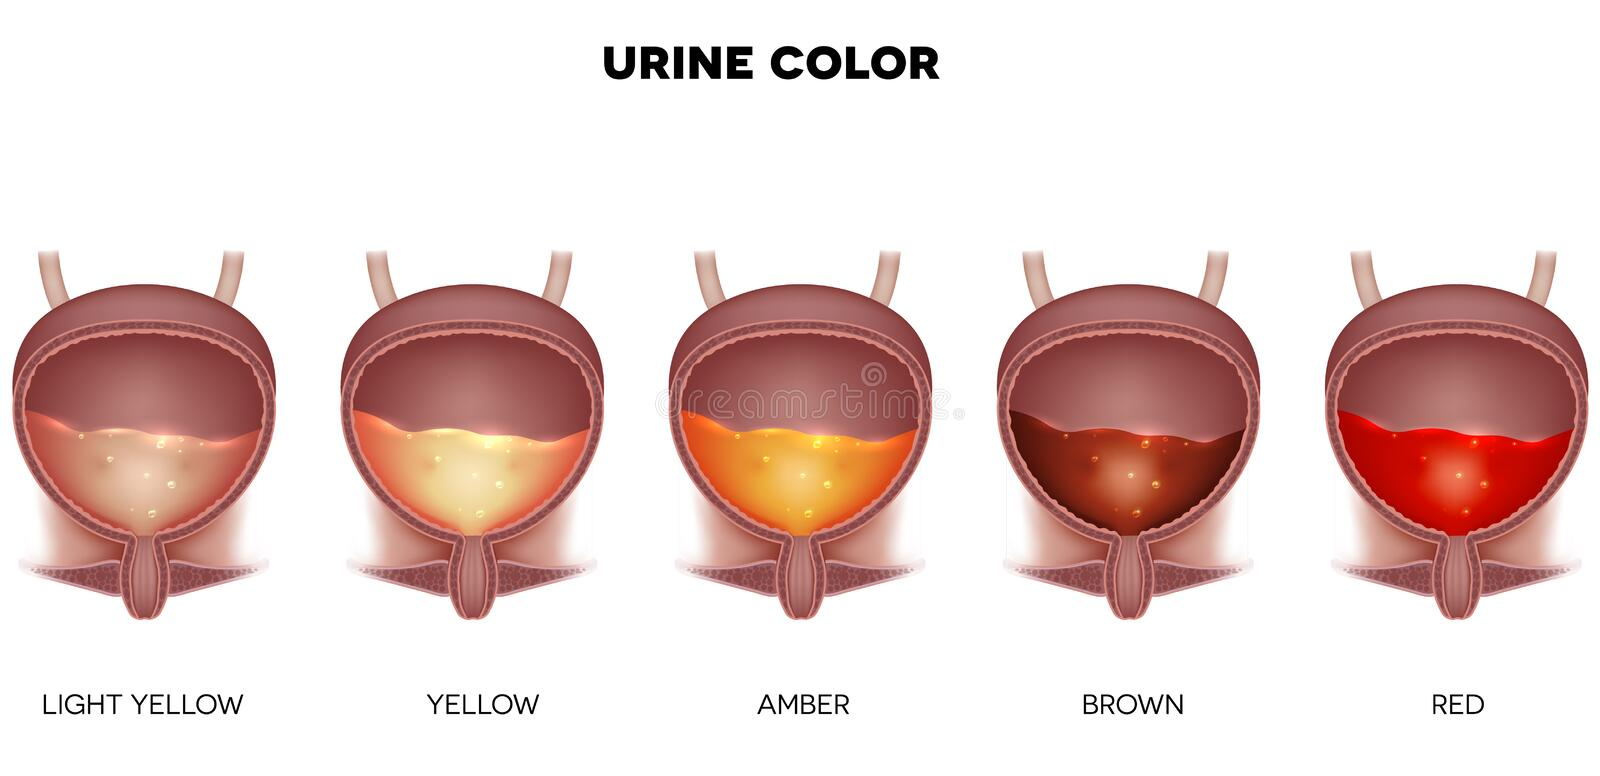 Urine Color Stock Vector Illustration Of Human Anatomical 100649925